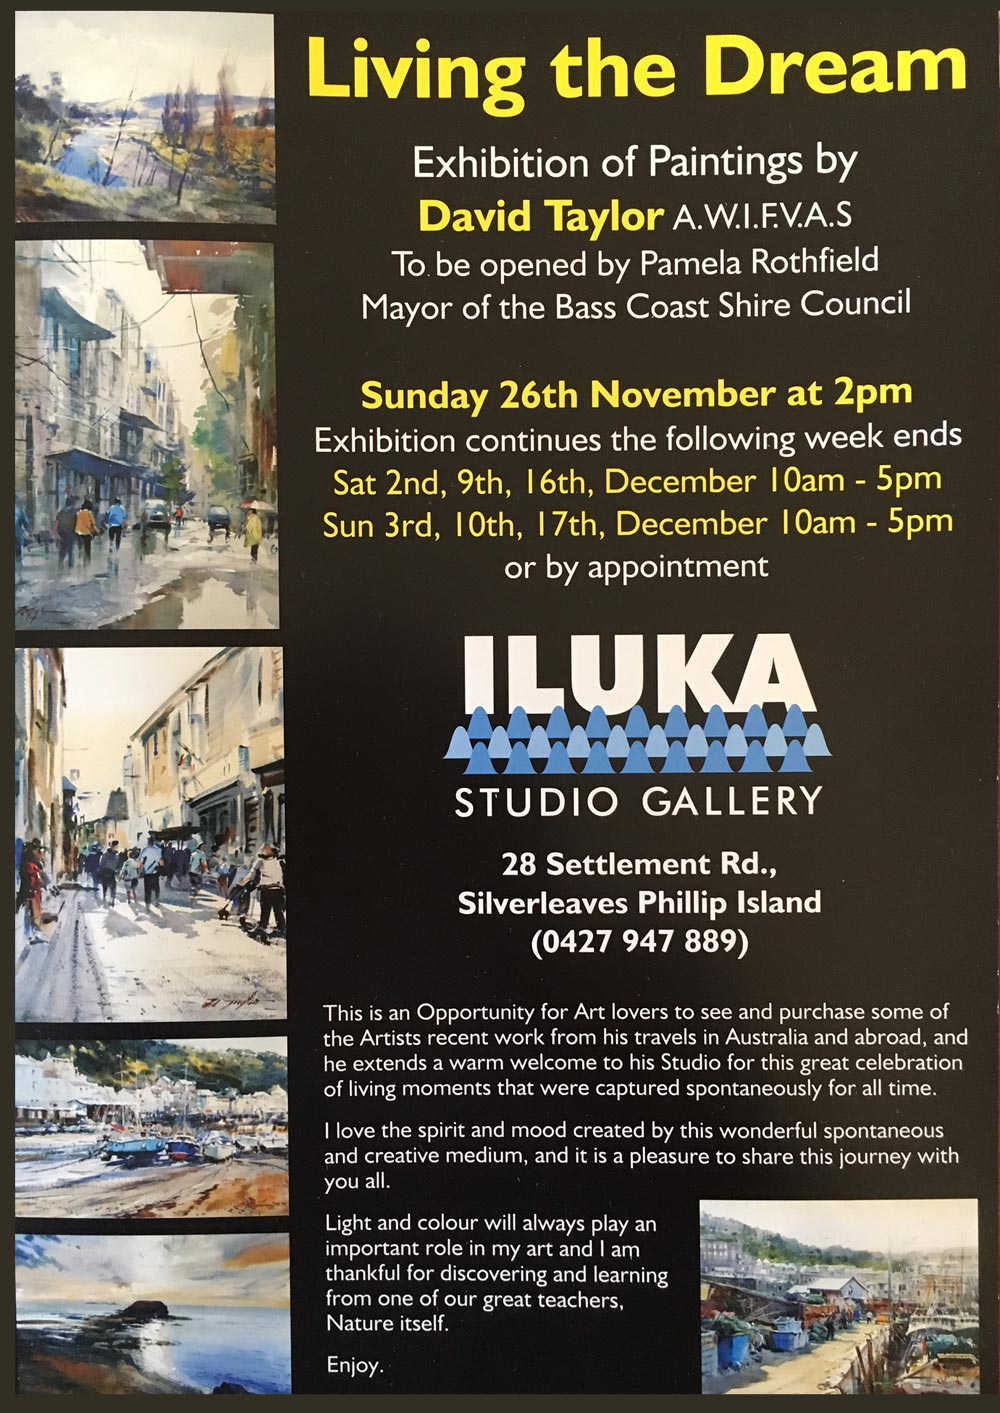 Living the Dream Exhibition - David Taylor - Artists' Society of